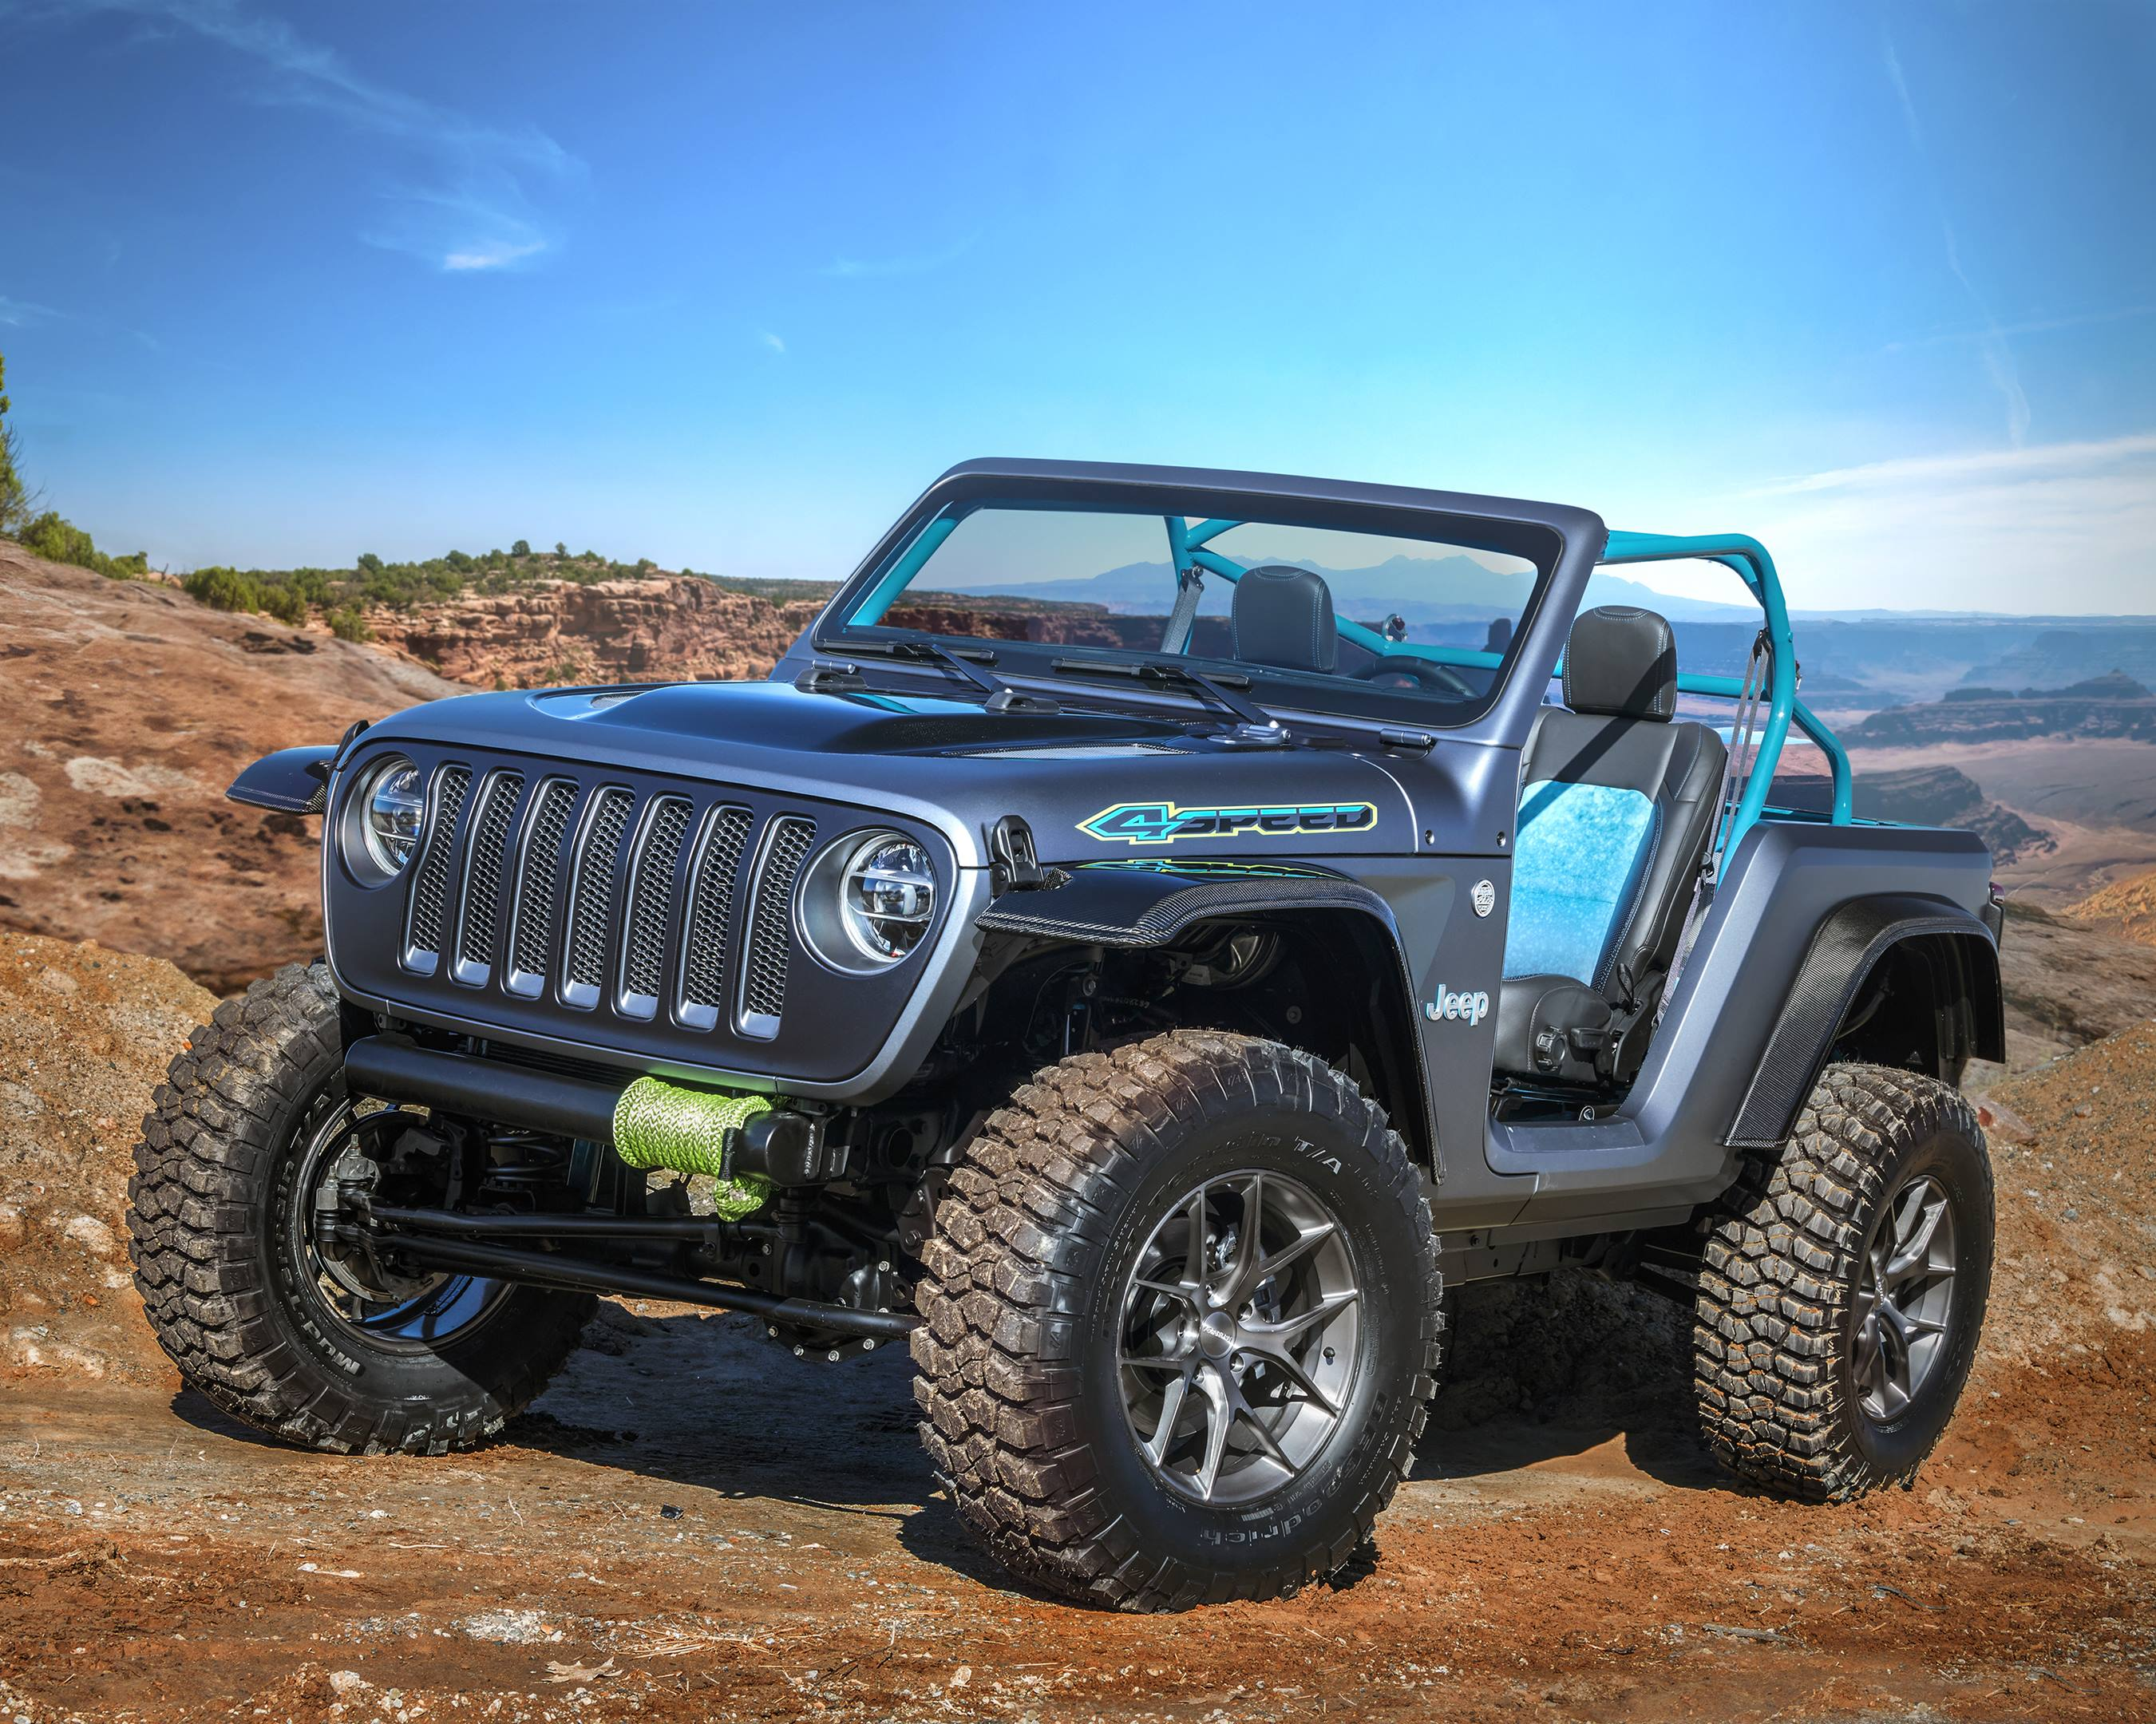 2018 Jeep 4Speed Concept off-road